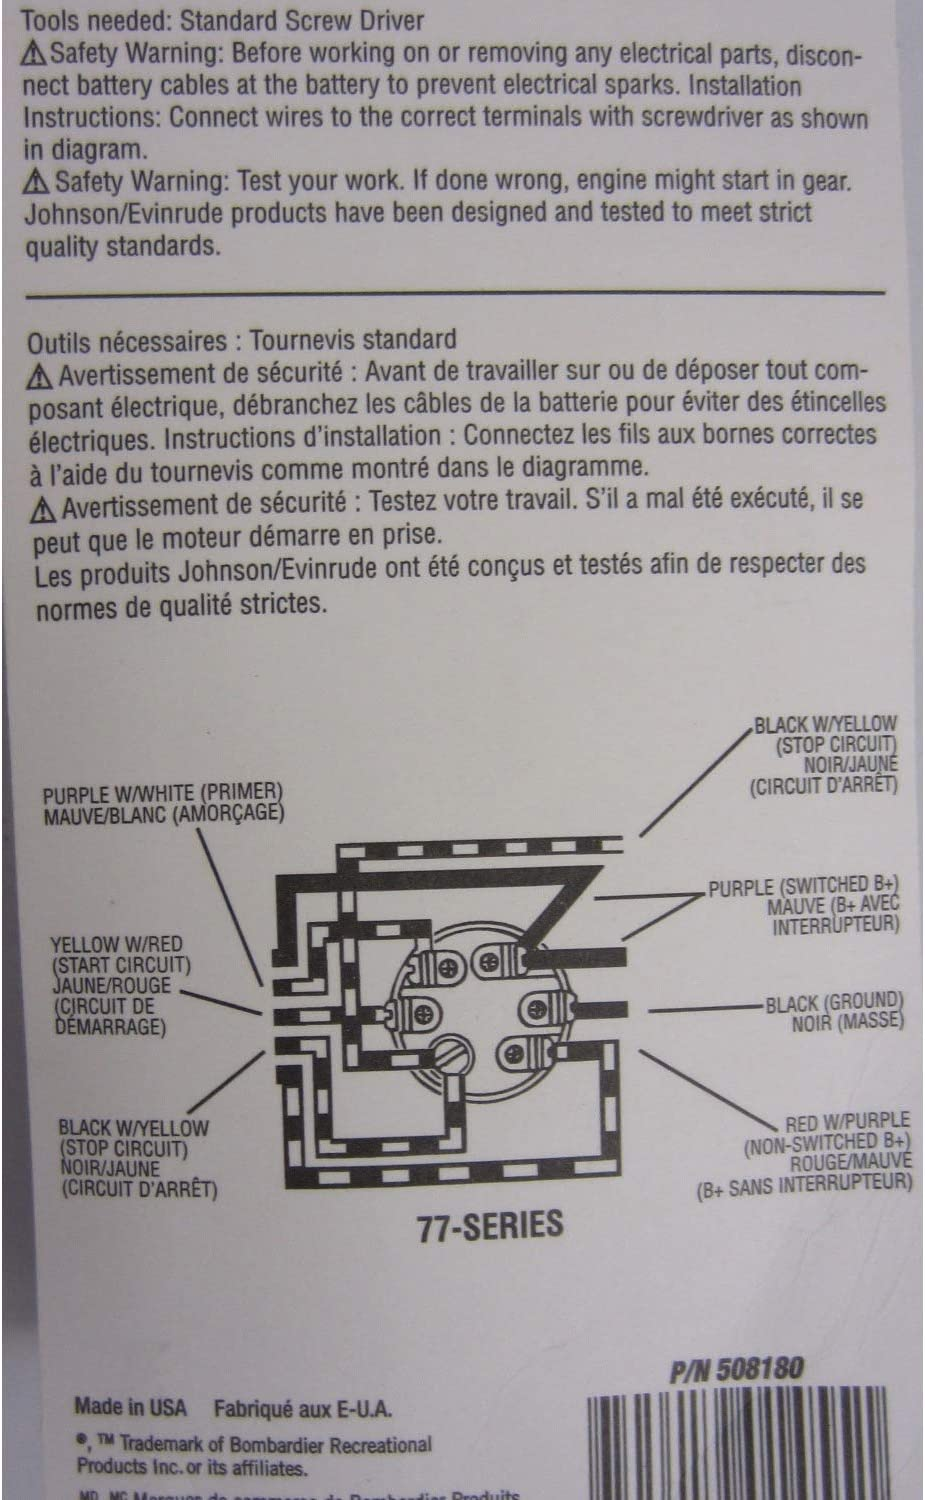 Evinrude Key Switch Wiring Diagram from images-na.ssl-images-amazon.com